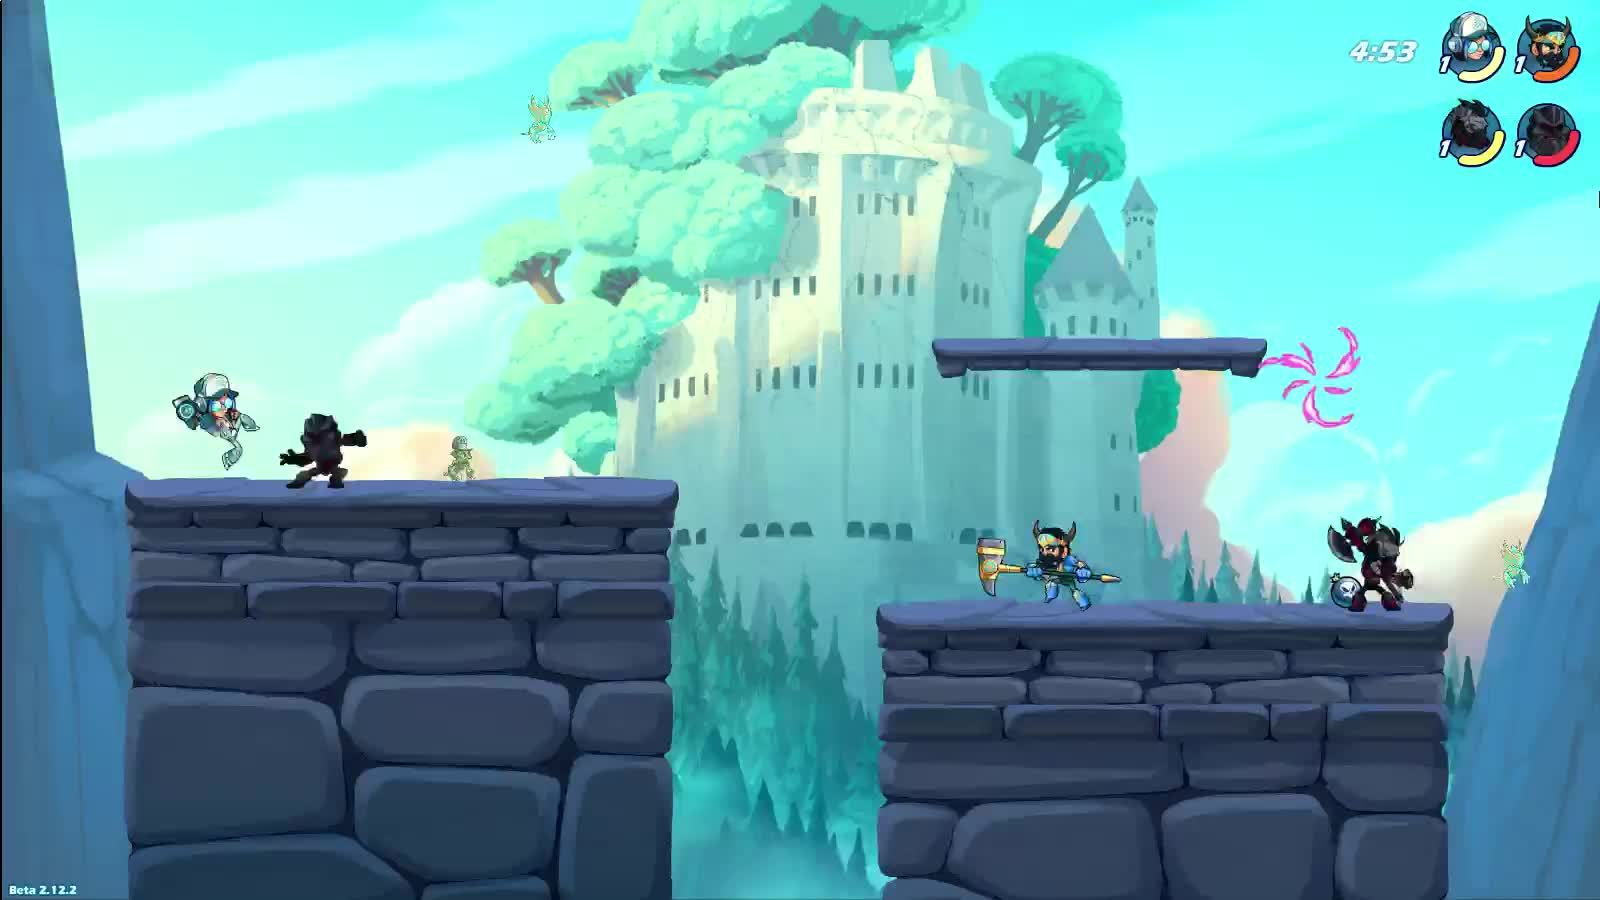 2v2, ada, brawlhalla, They did not expect that, did they GIFs